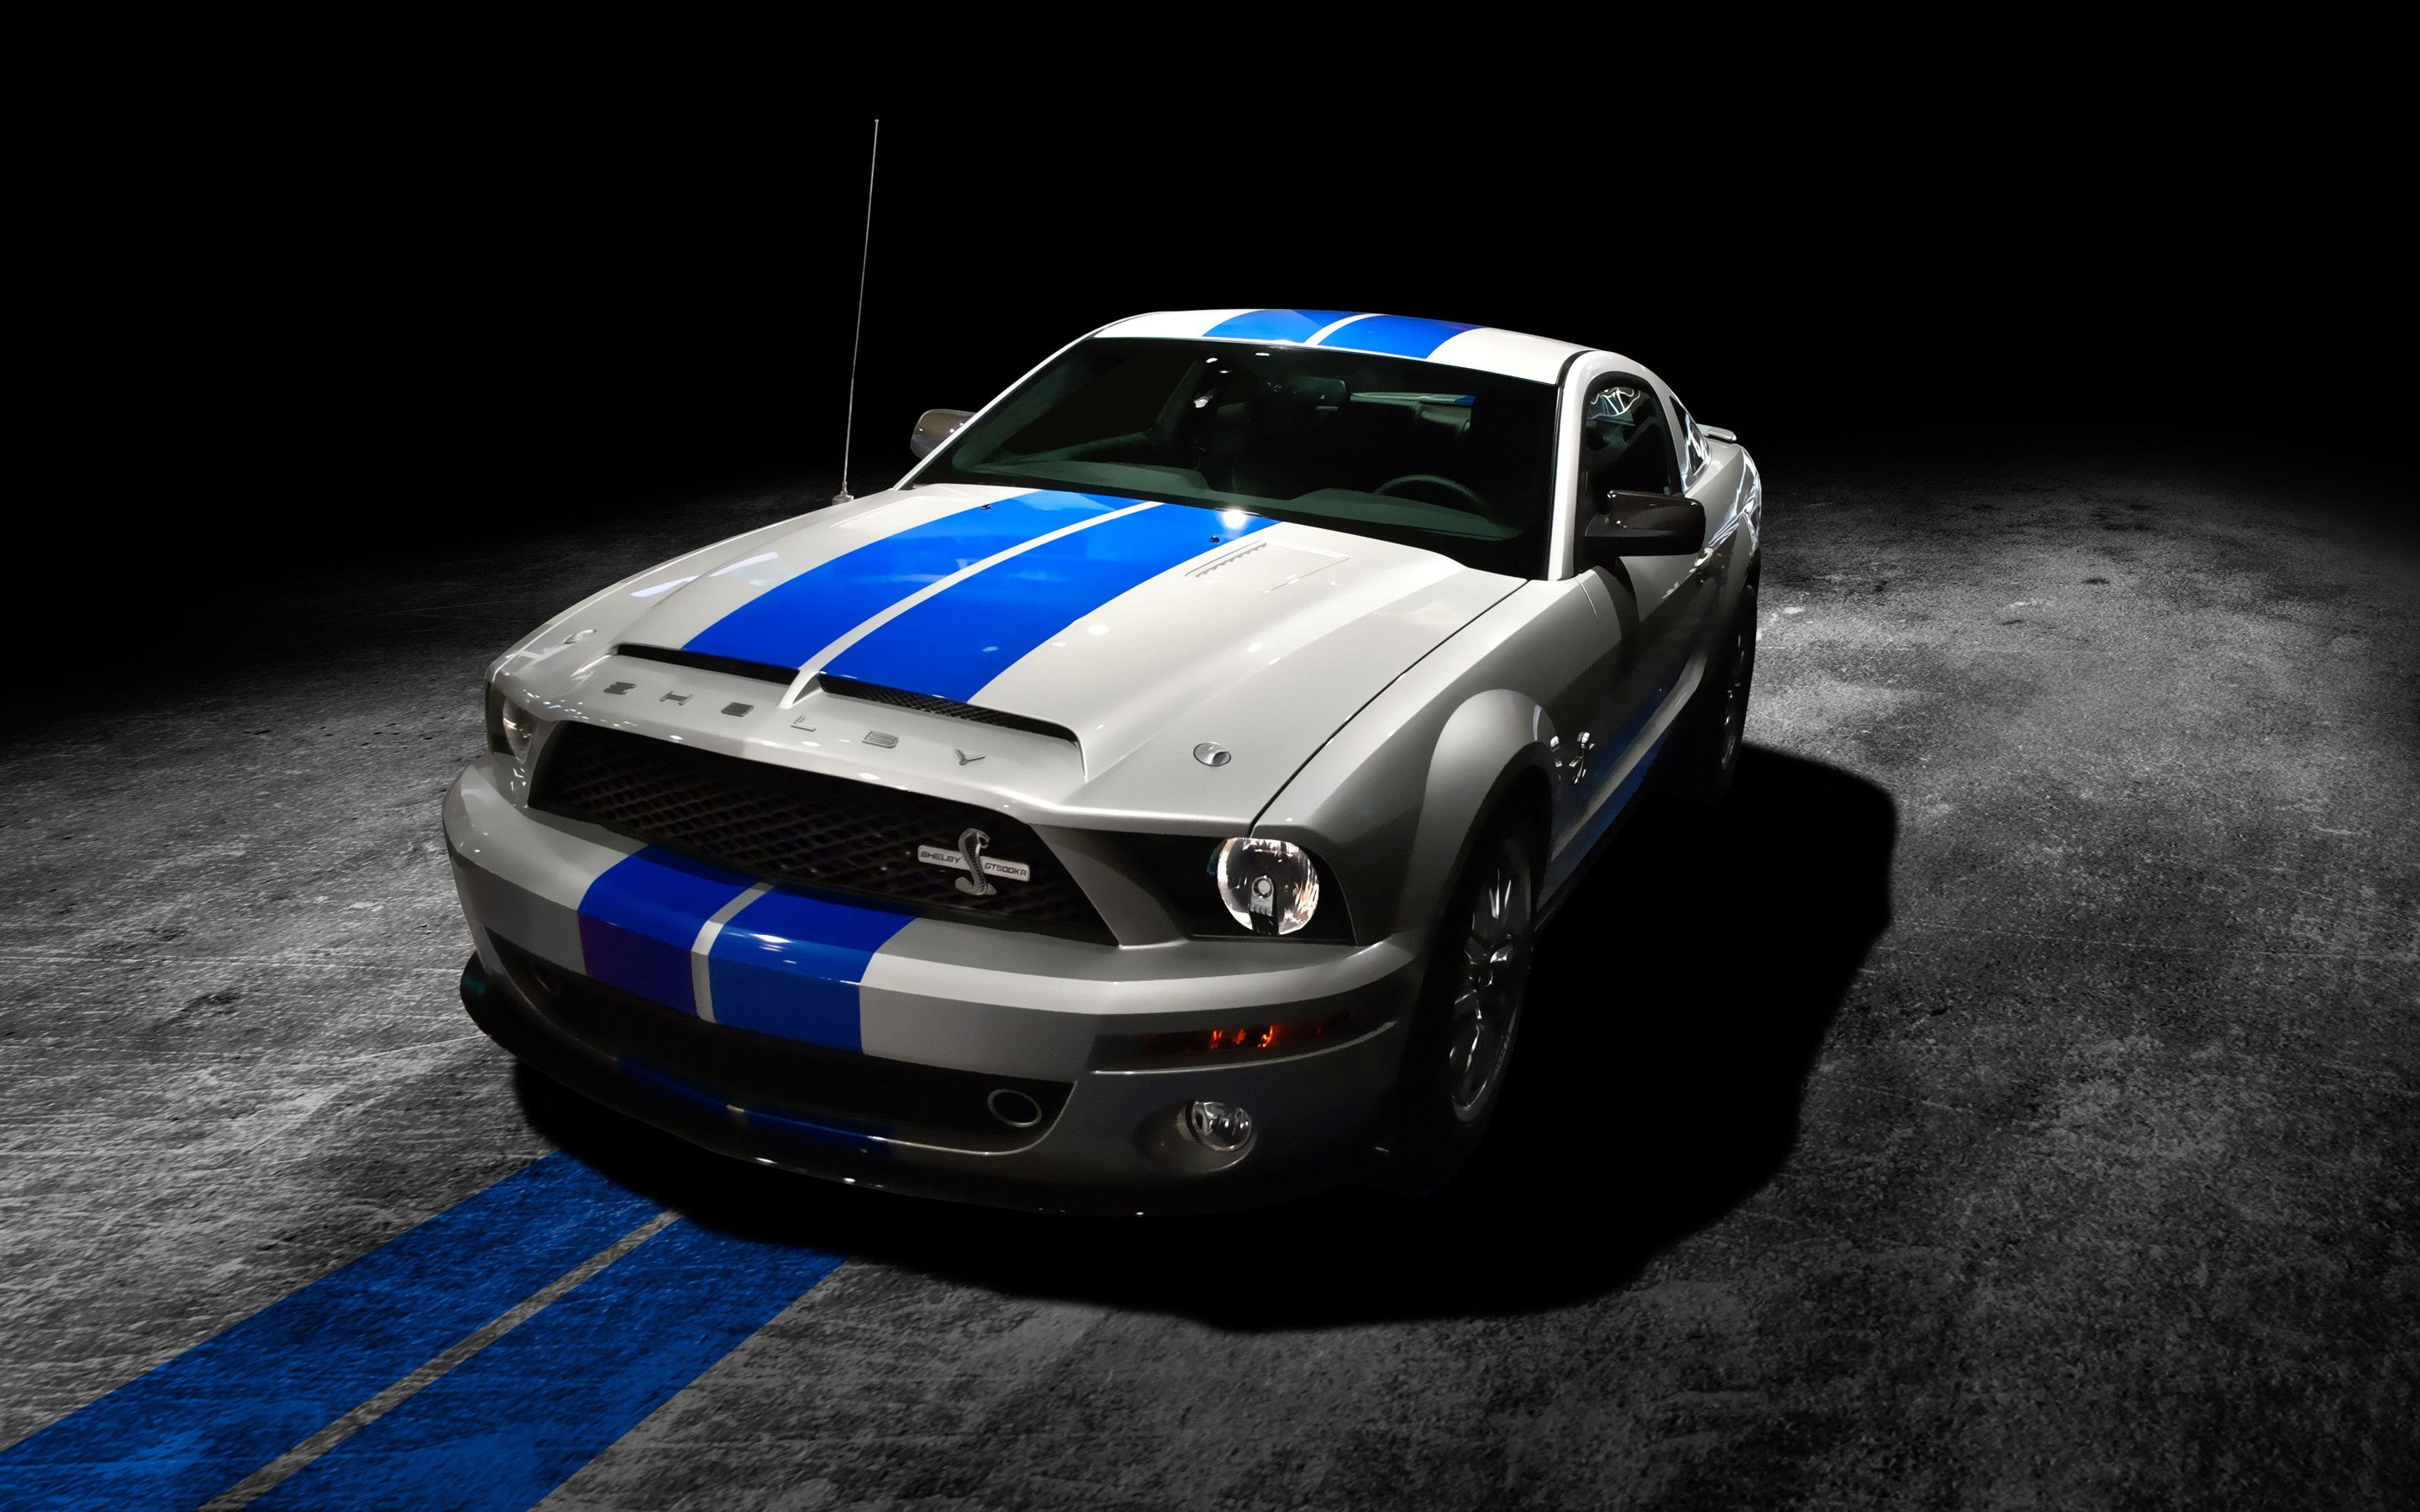 2880x1800 Ford Mustang Wallpaper 1920 X 1080 R Wallpaper Need Iphone 6s Plus Wallpaper Background For Iphone6splus Follow Iphone Biler Beromtheder